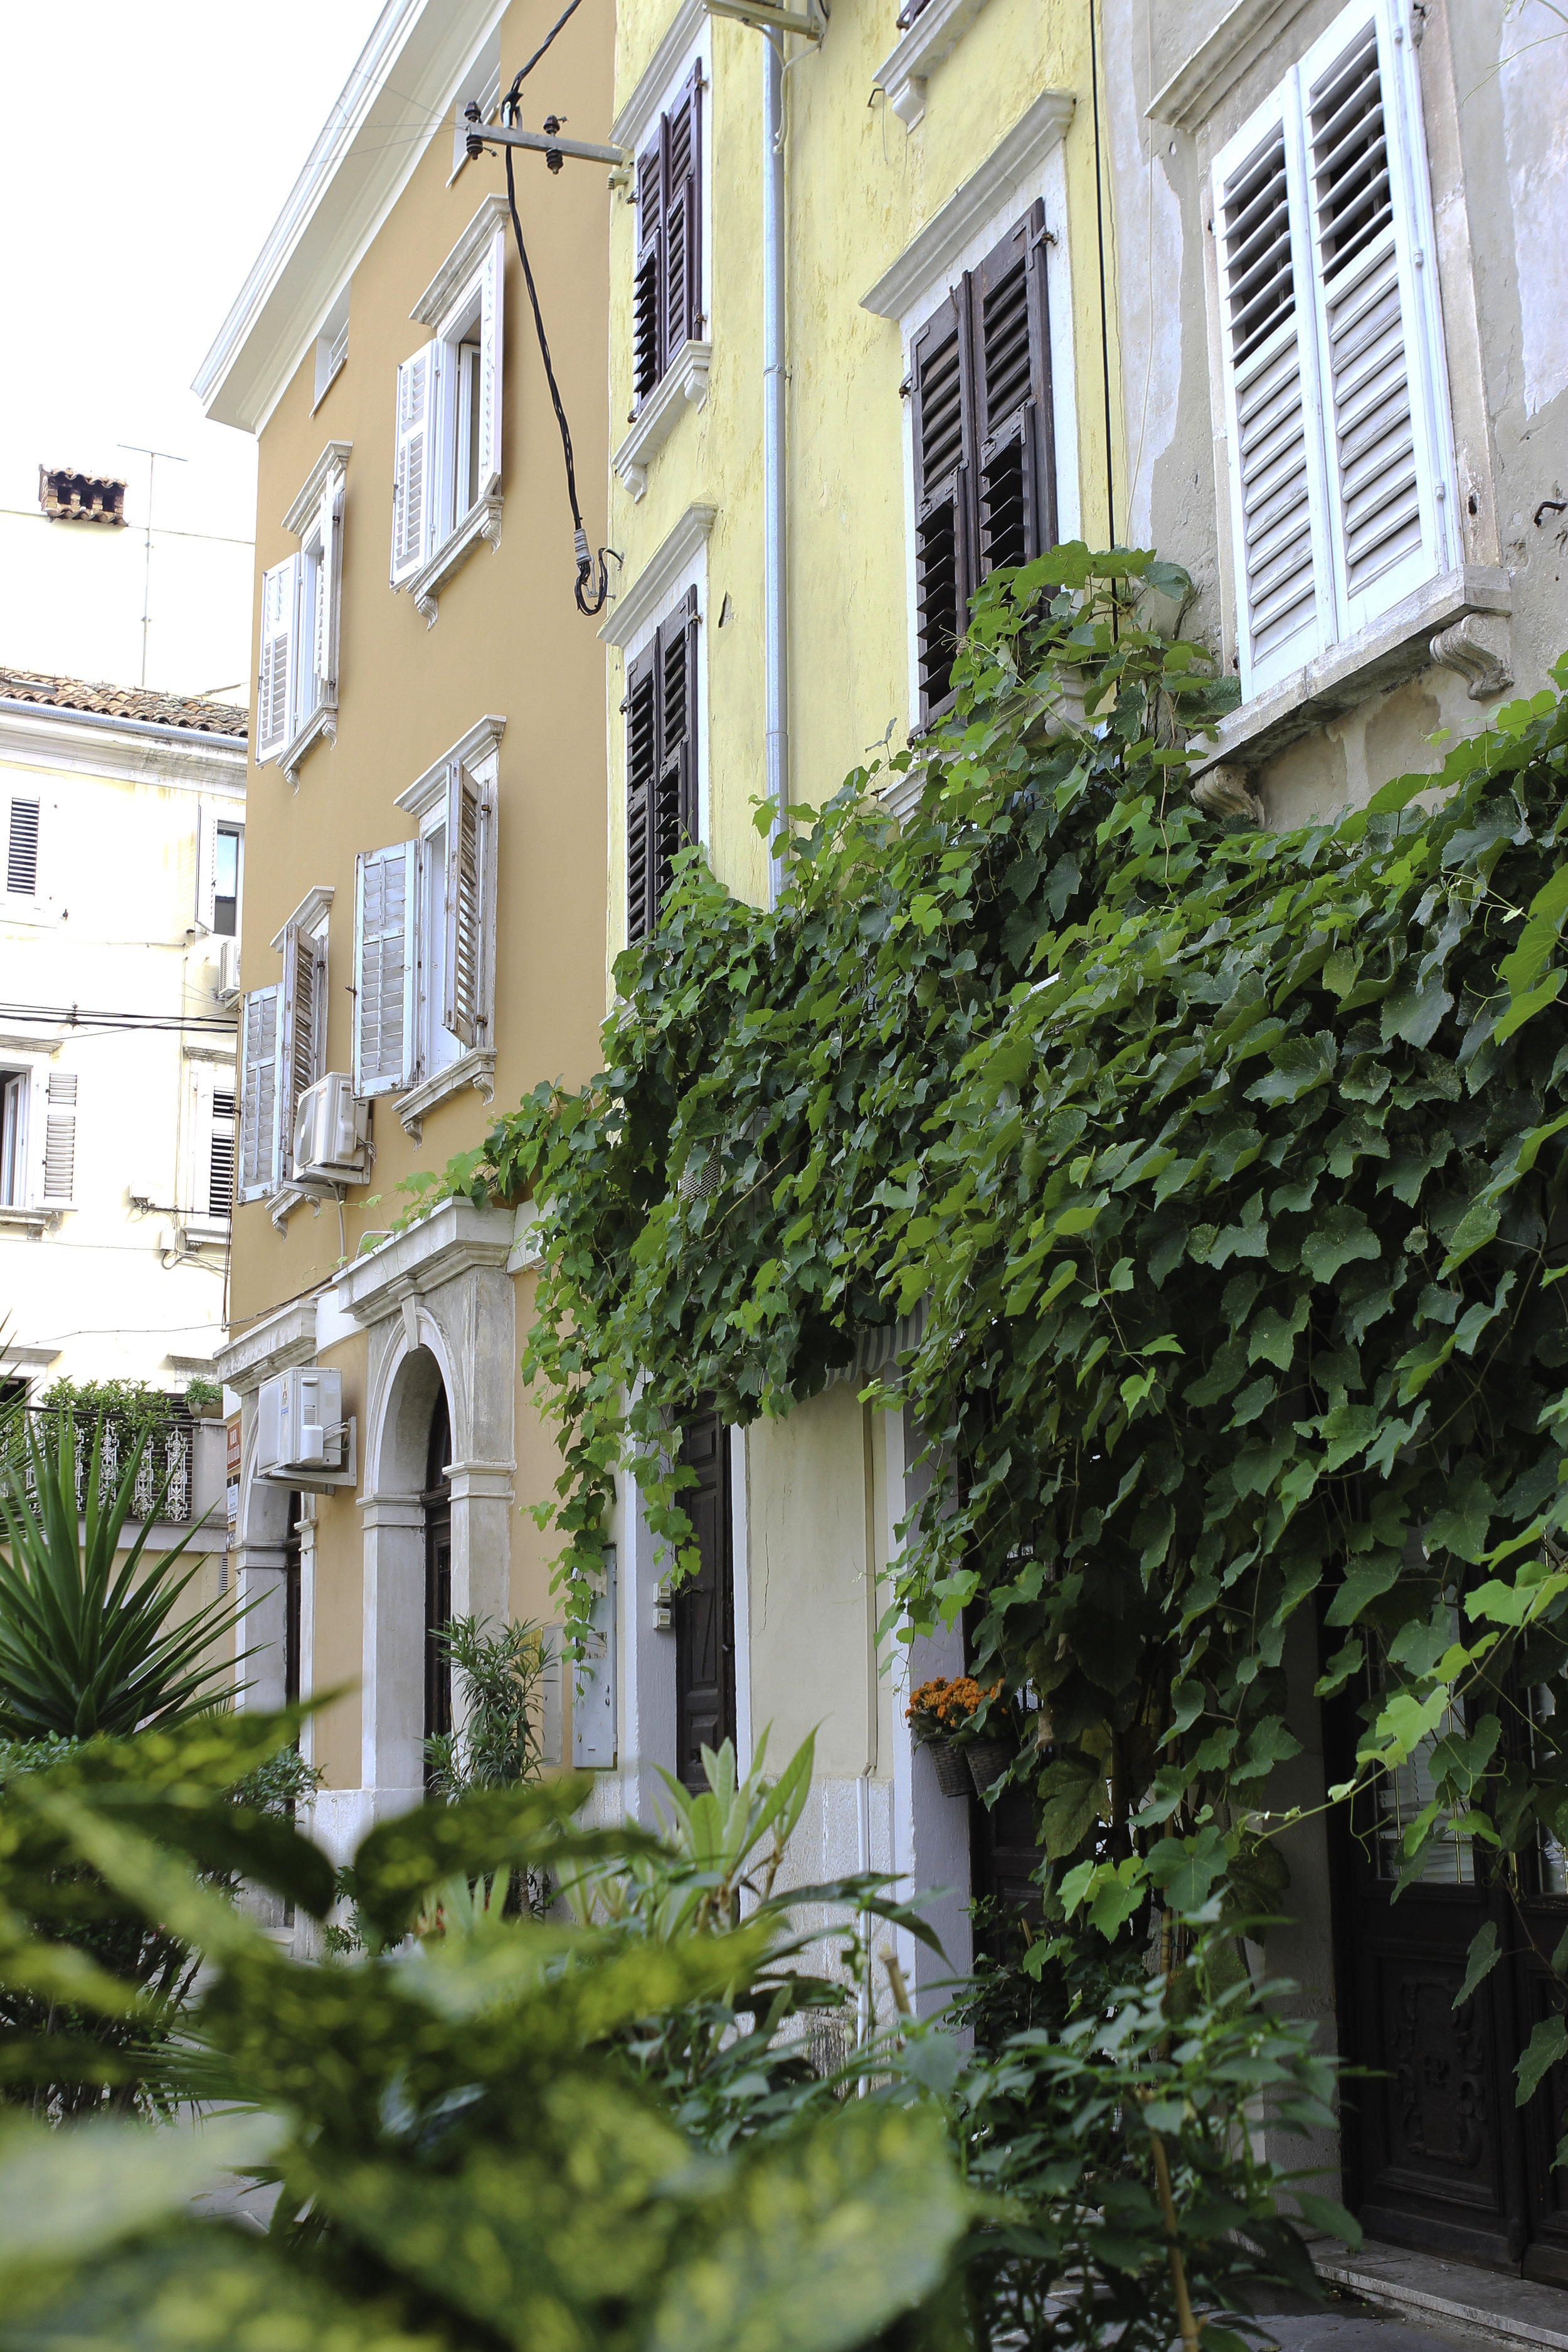 Amidst the narrow streets, lush plants hang from each window and doorway.